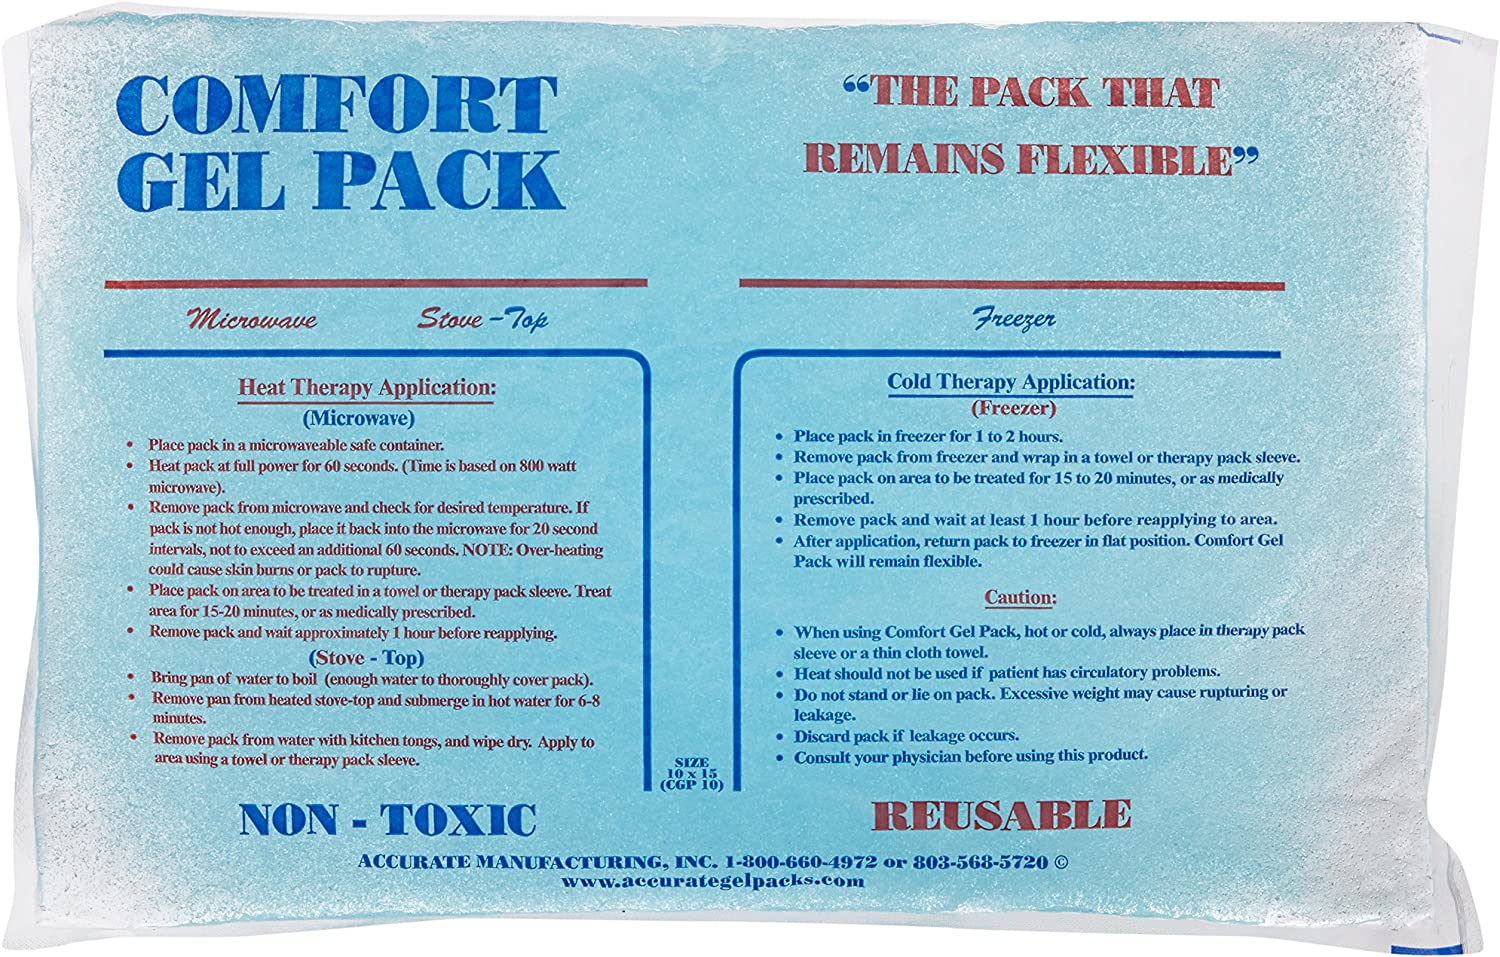 Comfort Gel Pack (10x15 Size)